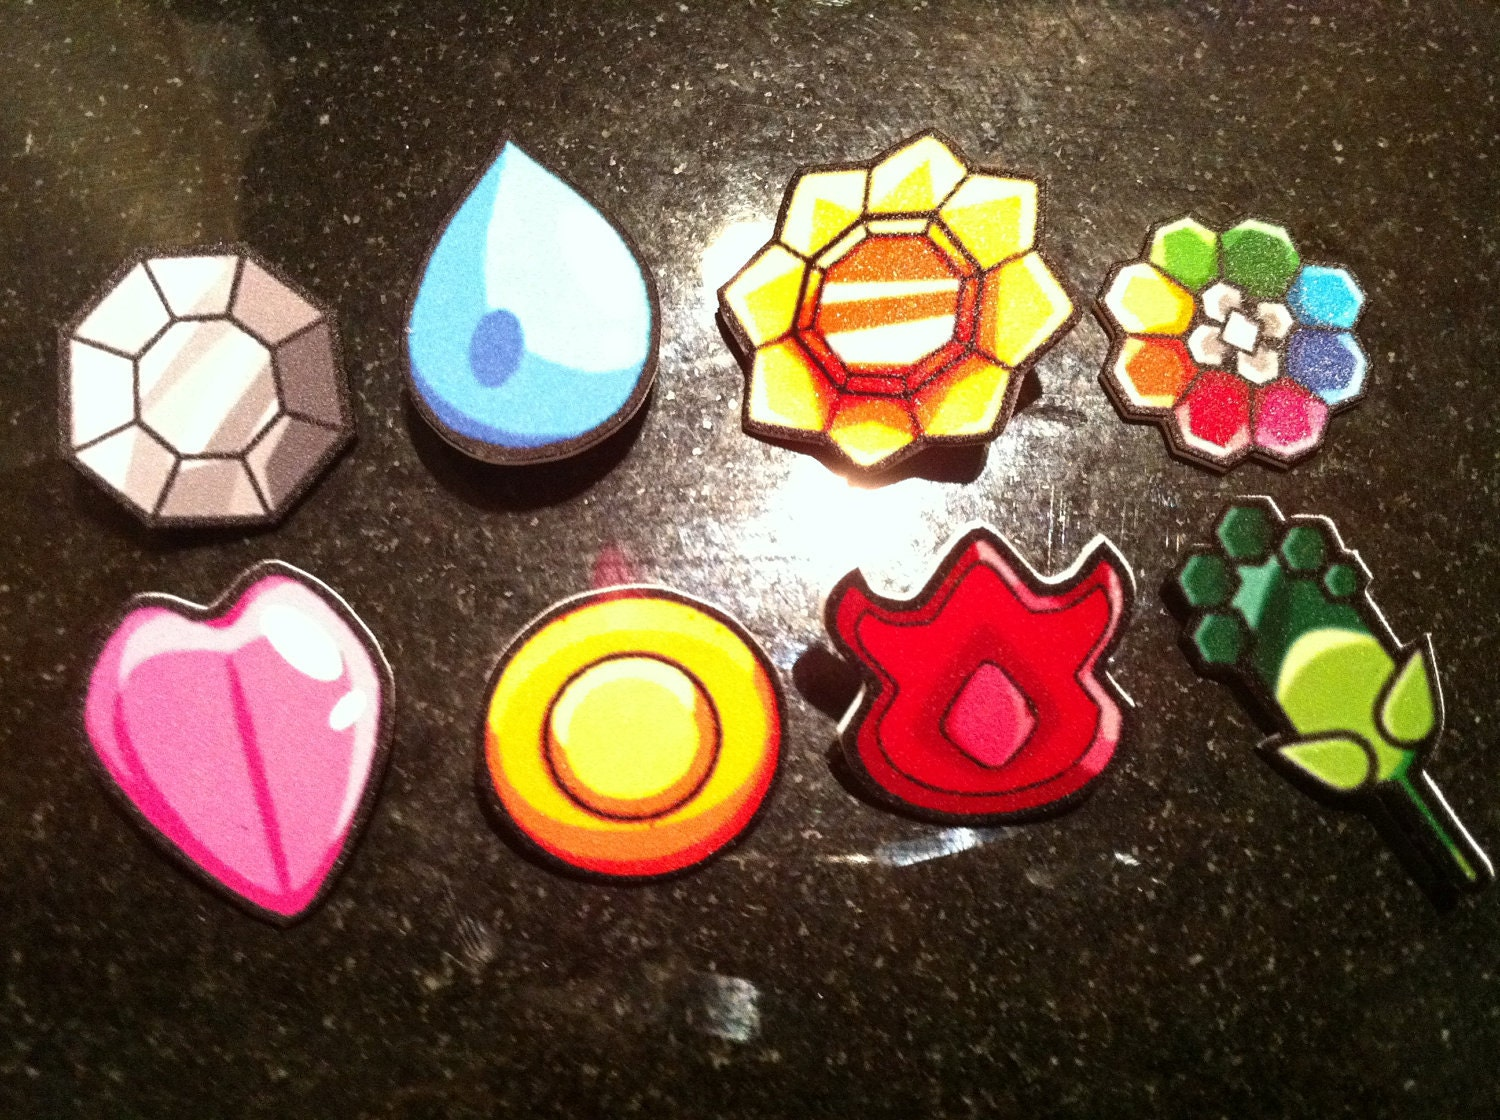 Kanto Indigo League Gen I Pokemon Badge Set